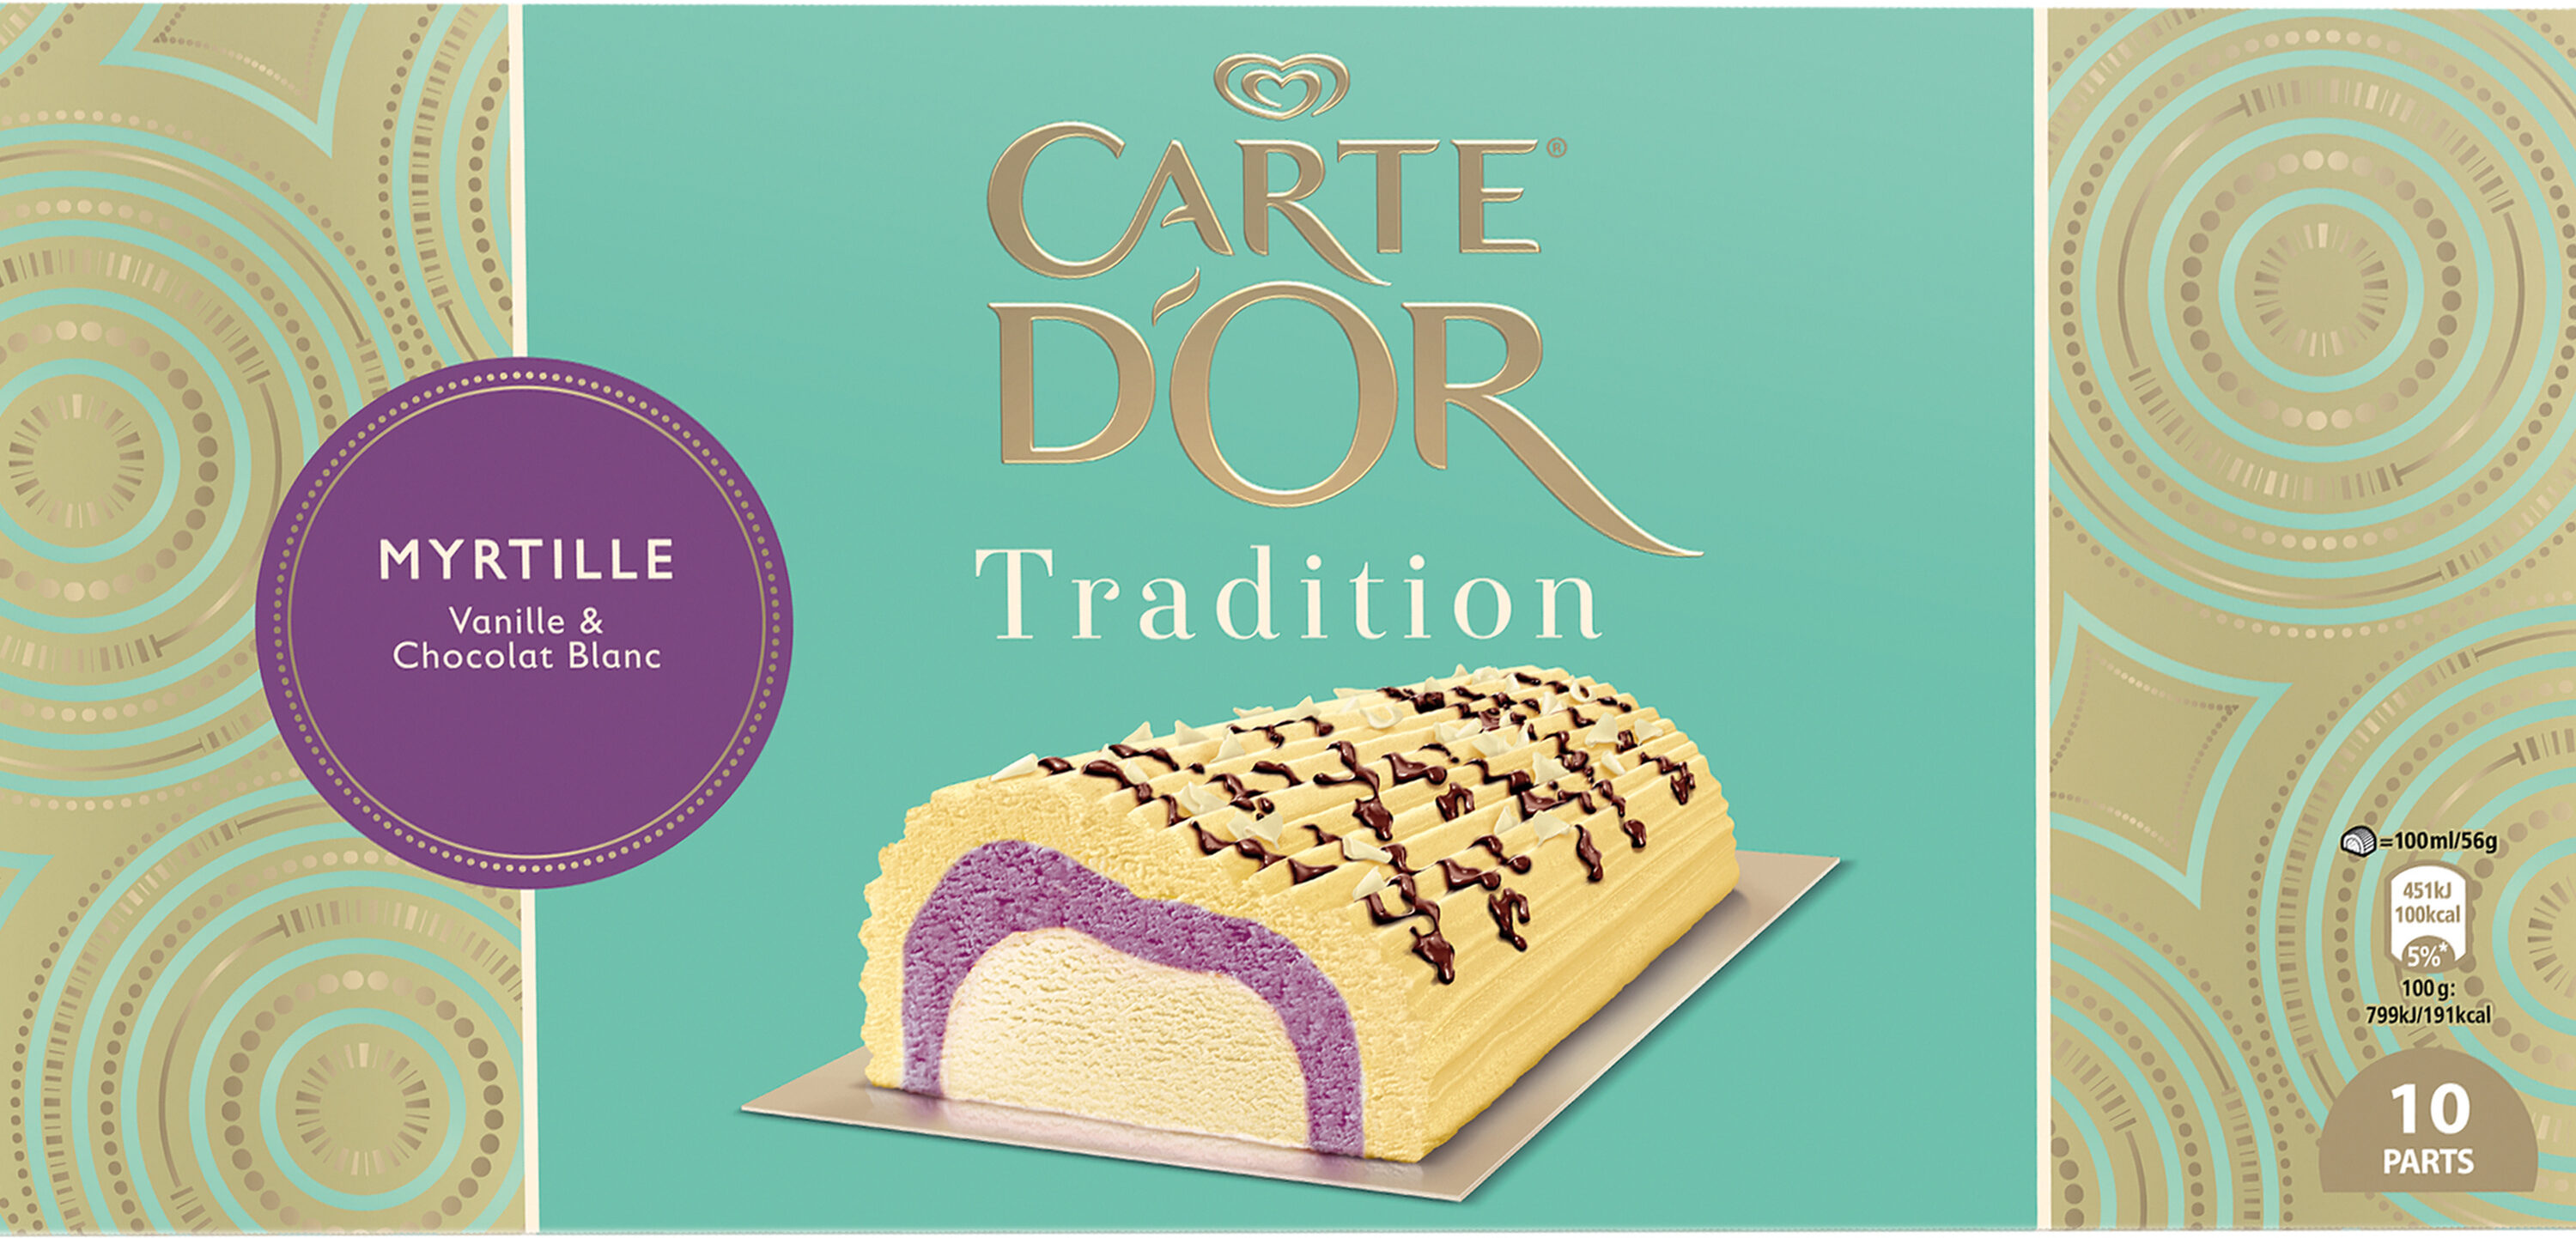 Carte D'or Tradition Buche Glacée Myrtille Chocolat Blanc 10 parts 1l - Produit